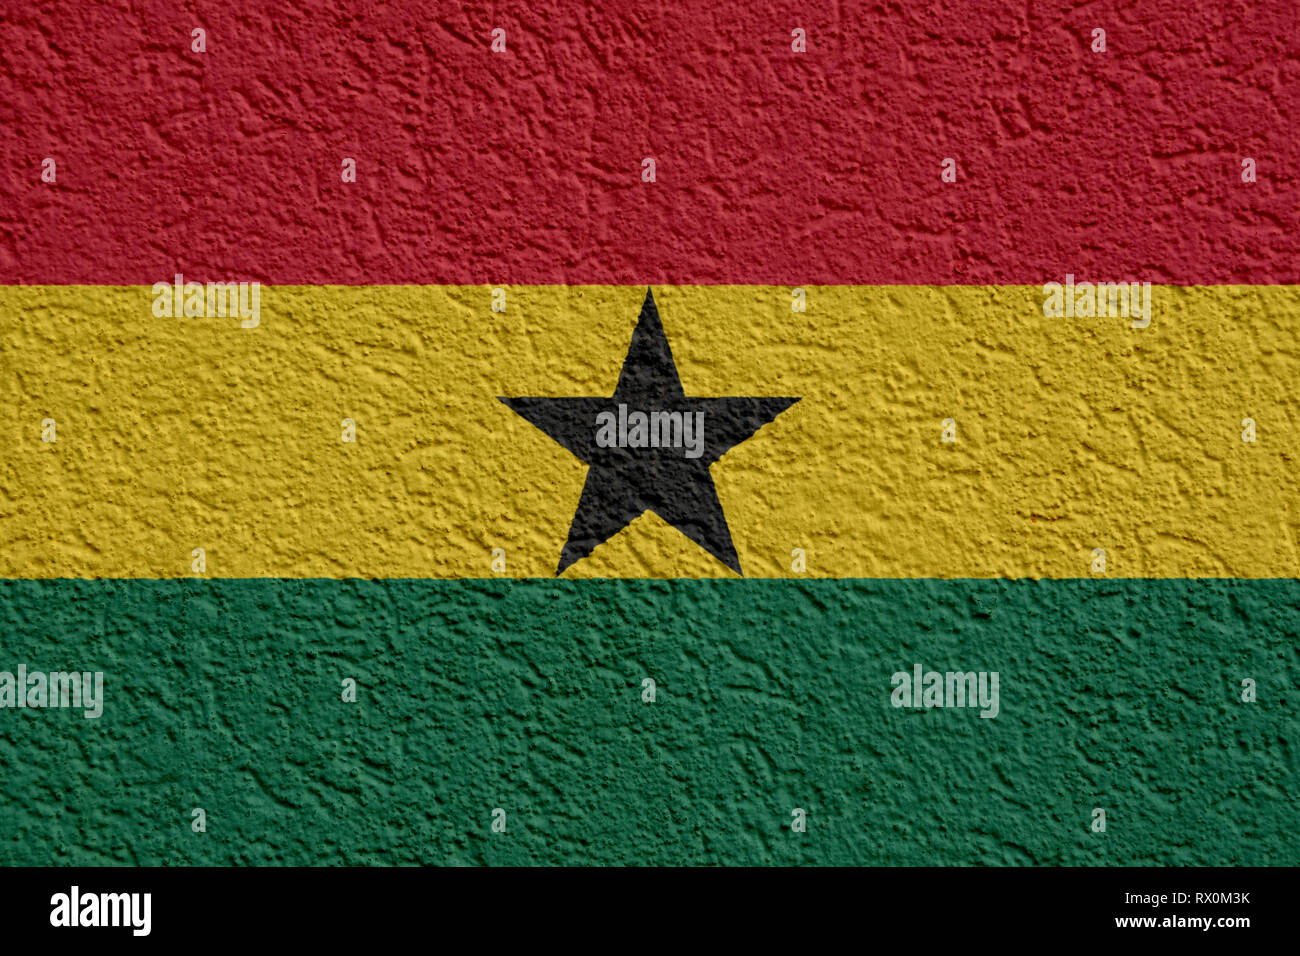 Ghana Politics Or Business Concept: Ghanaian Flag Wall With Plaster, Background Texture - Stock Image